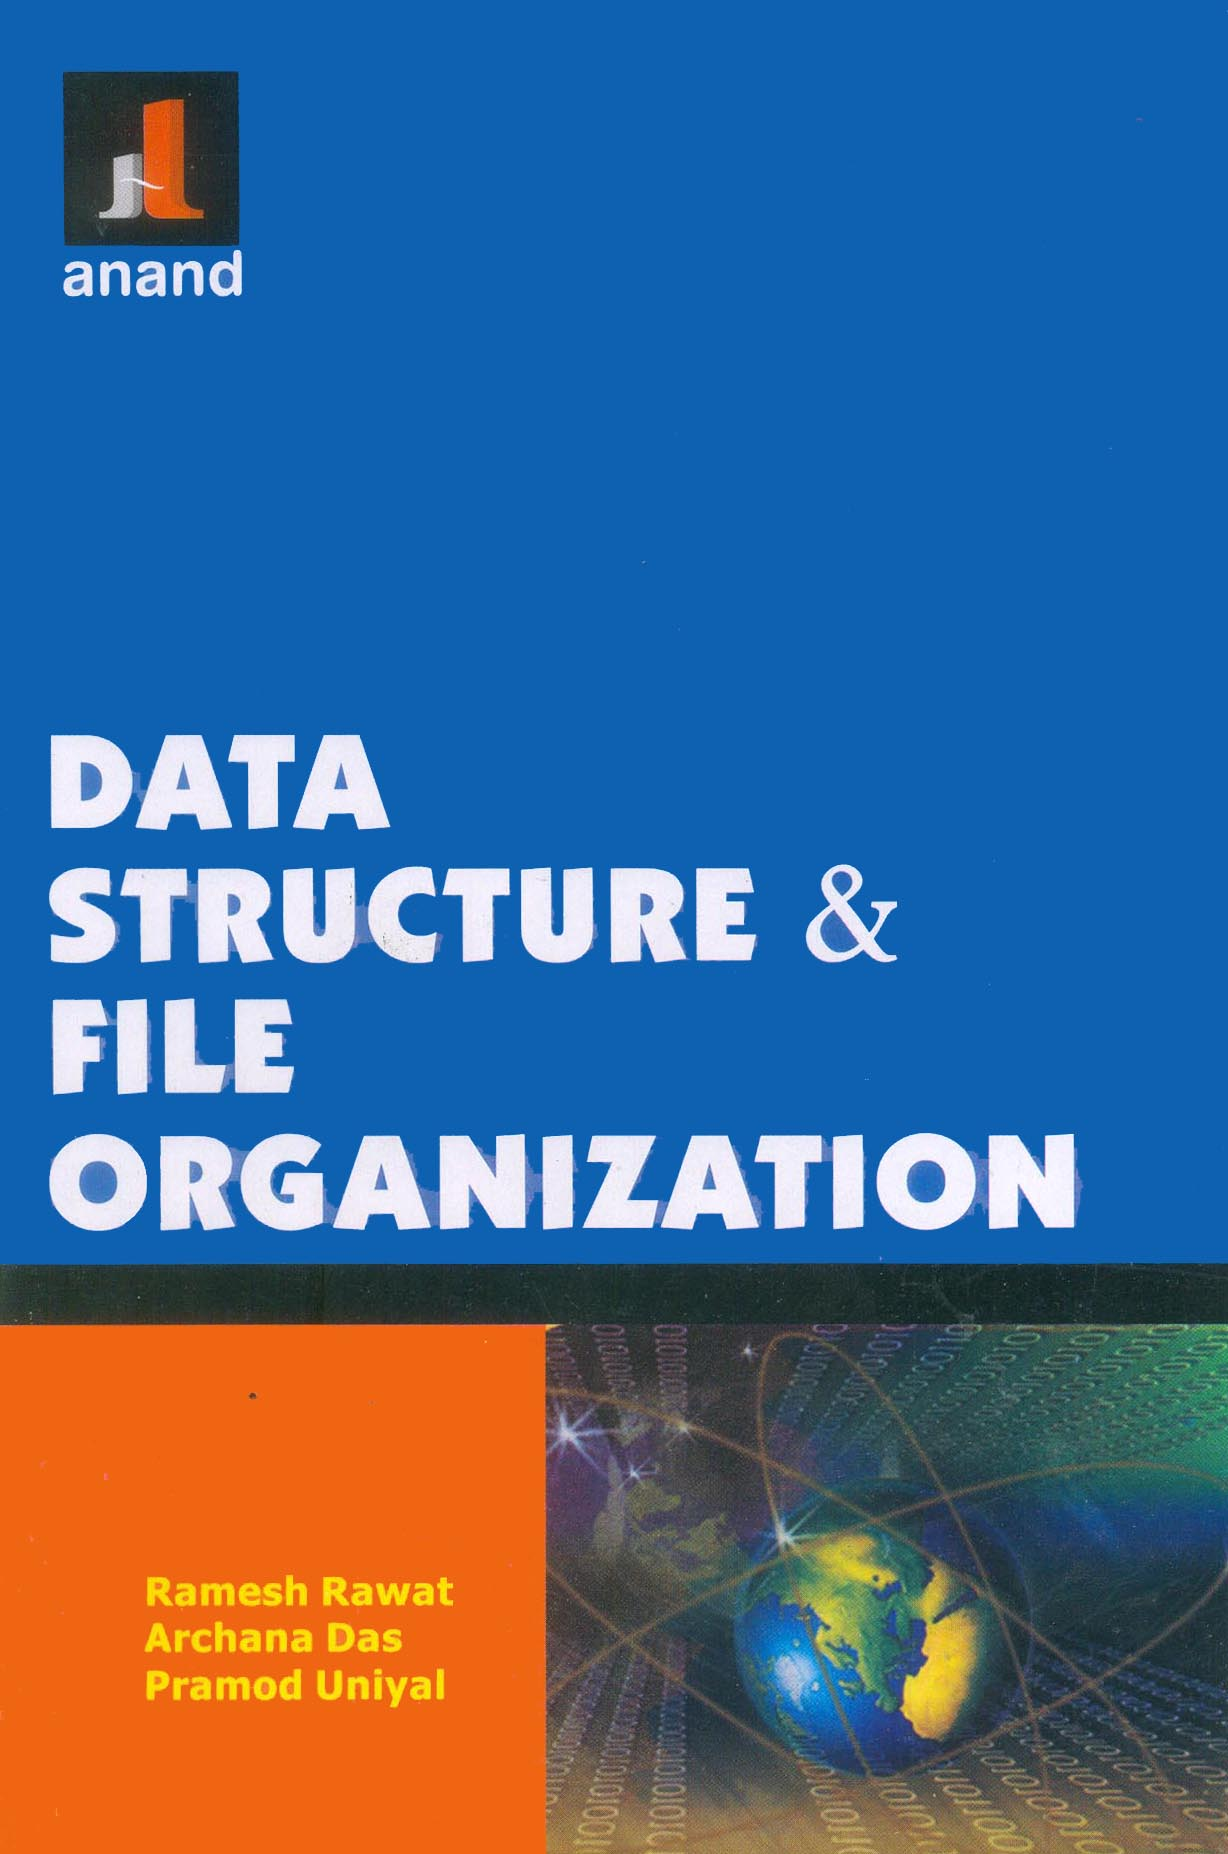 201 DATA STRUCTURE AND FILE ORGANIZATION